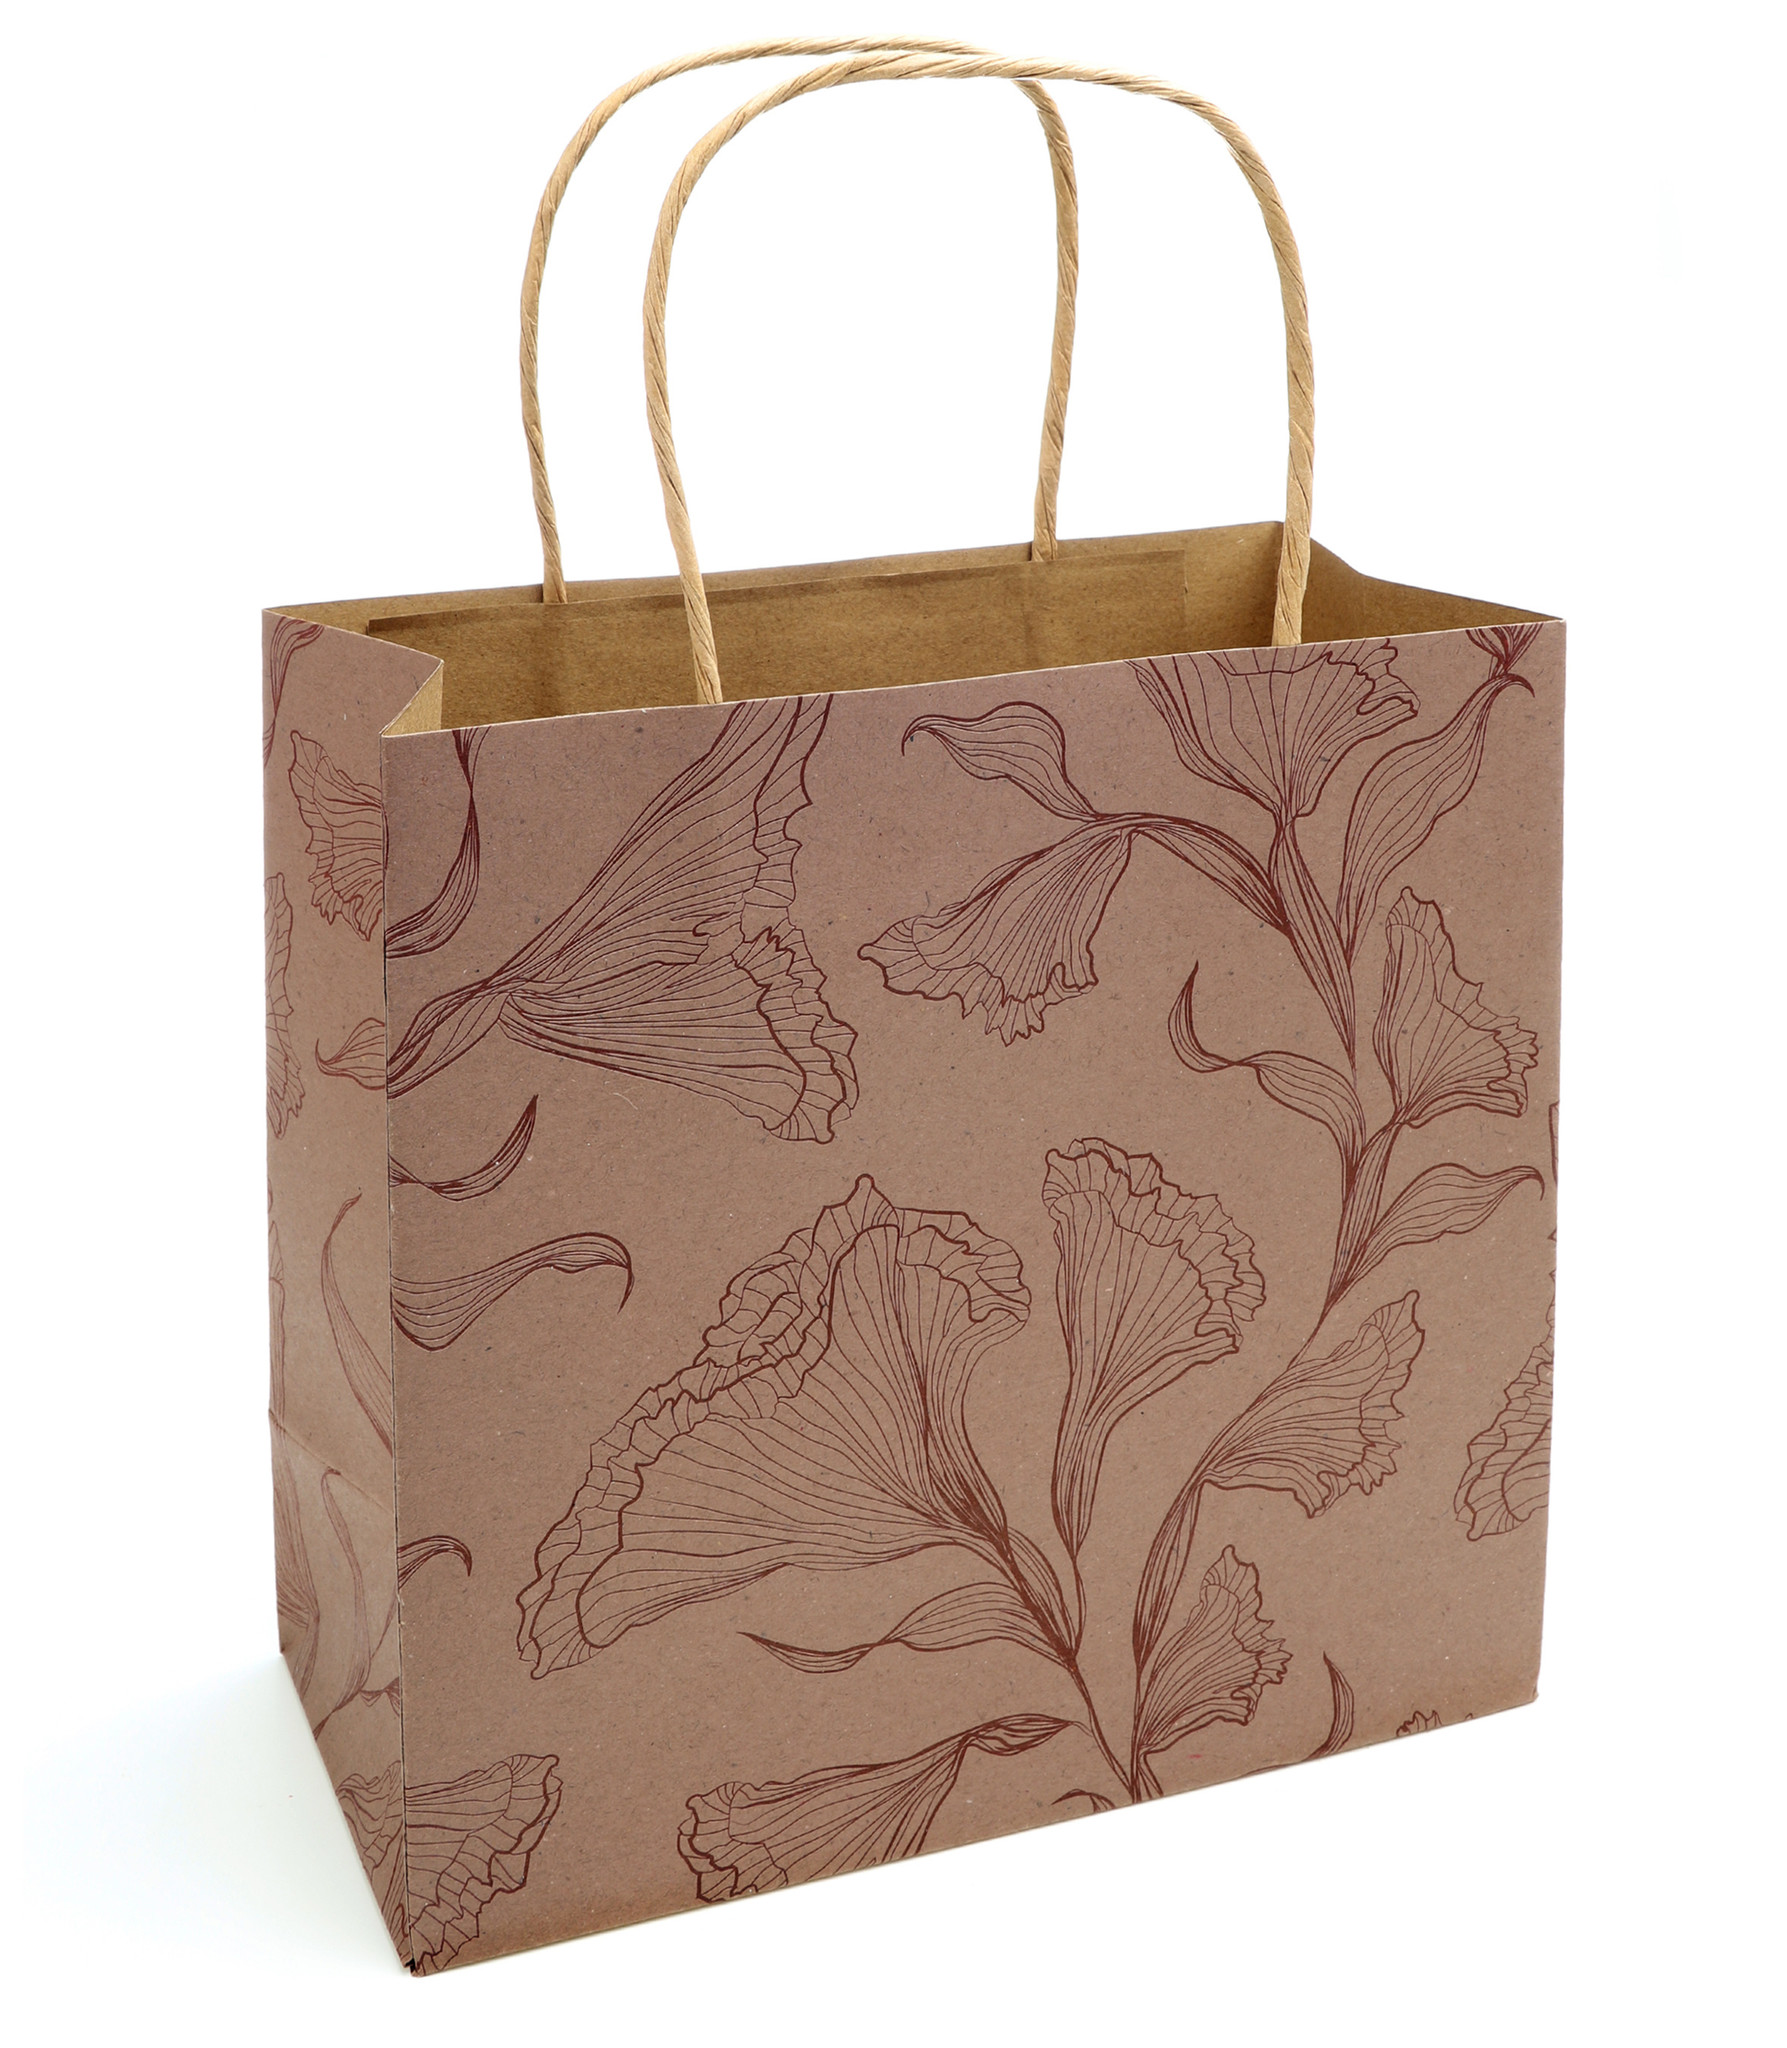 Floralice Paper Bag - Marble Rose - 5 pieces